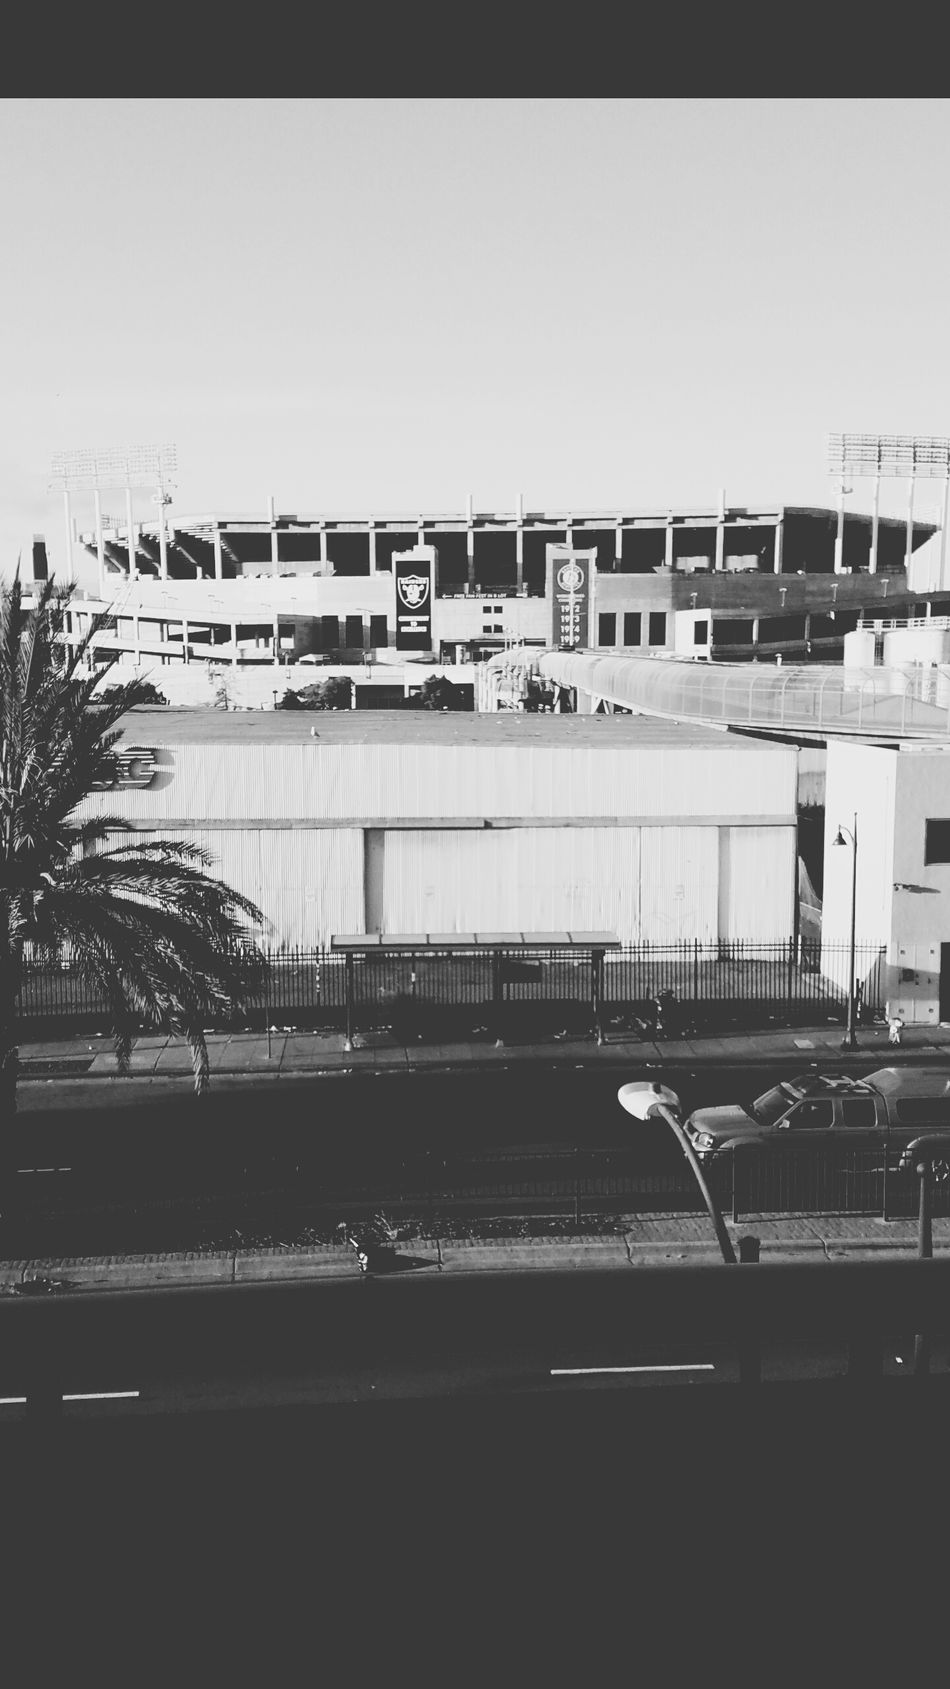 Oakland Coliseum, Oakland Ca. Go Raiders, Go Athletics!!! Built Structure Outdoors Day No People Architecture Stadium Sky B&w Street Photography Street Photography Oakland California Random Shots Oakland Raiders Oakland Athletics